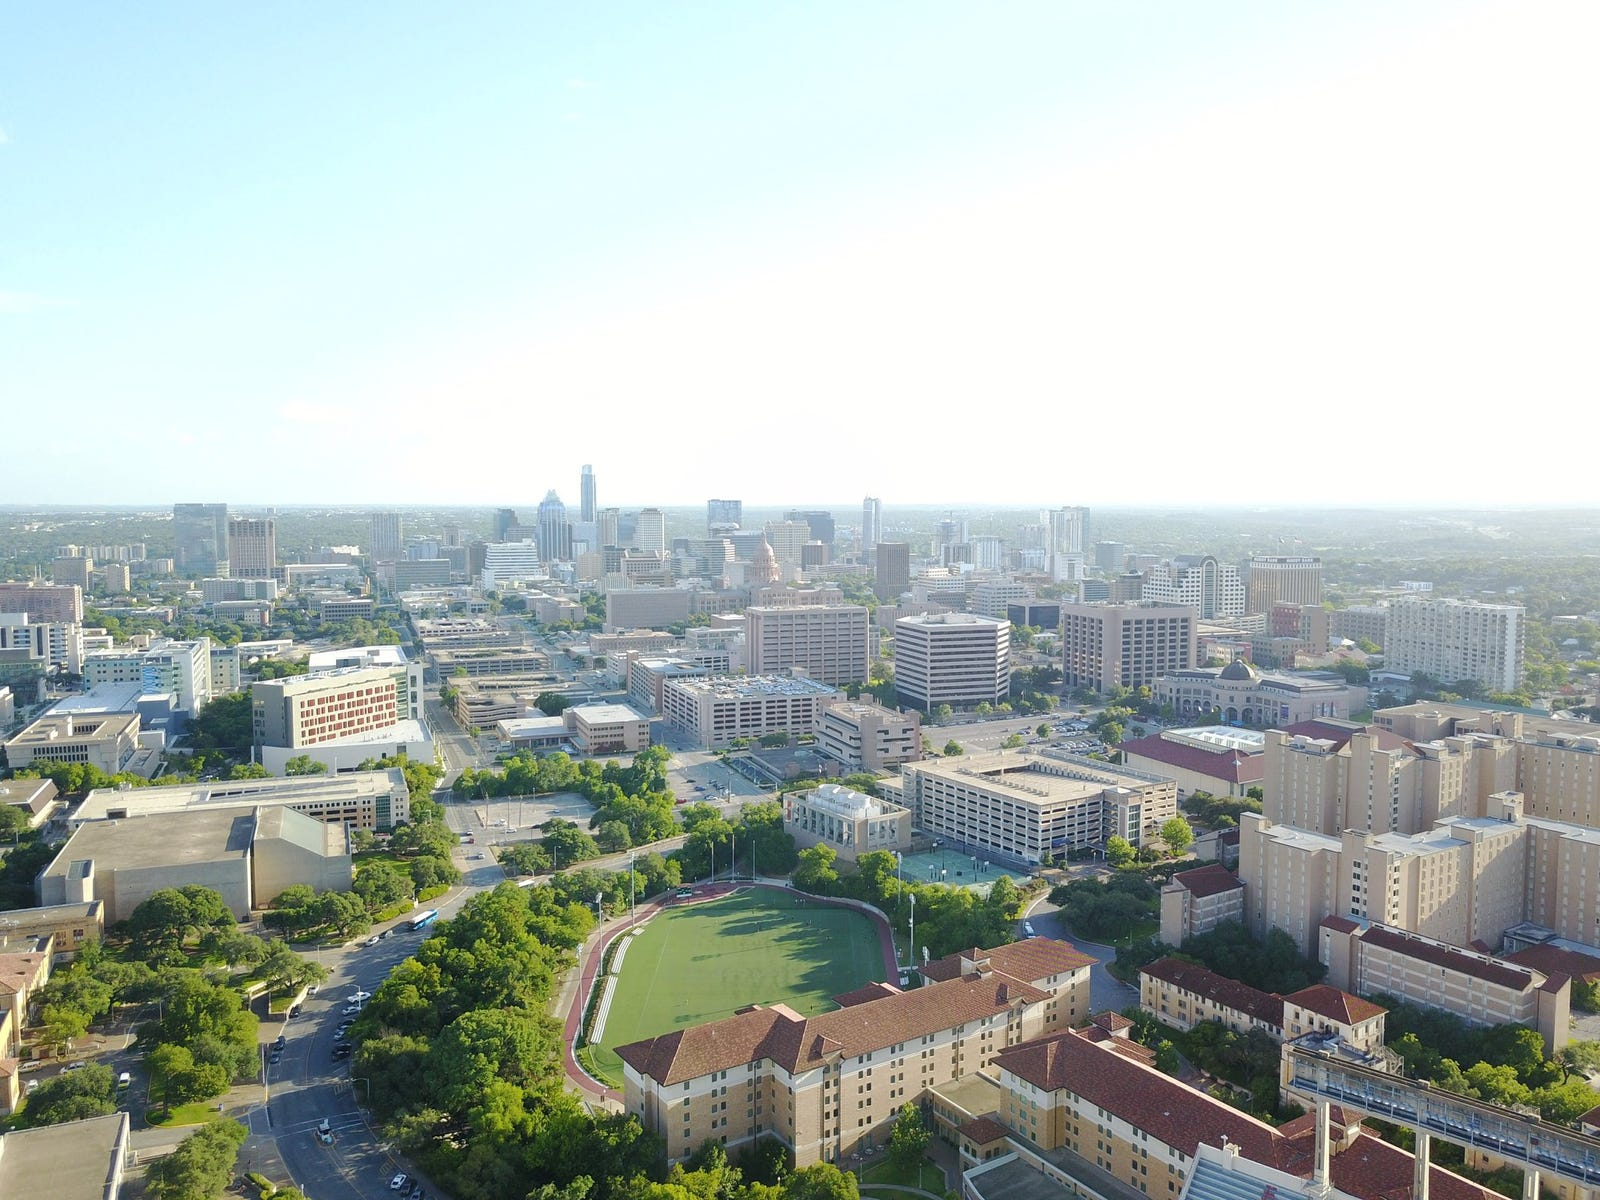 Downtown Austin from Darrell K Royal - Texas Memorial Stadium